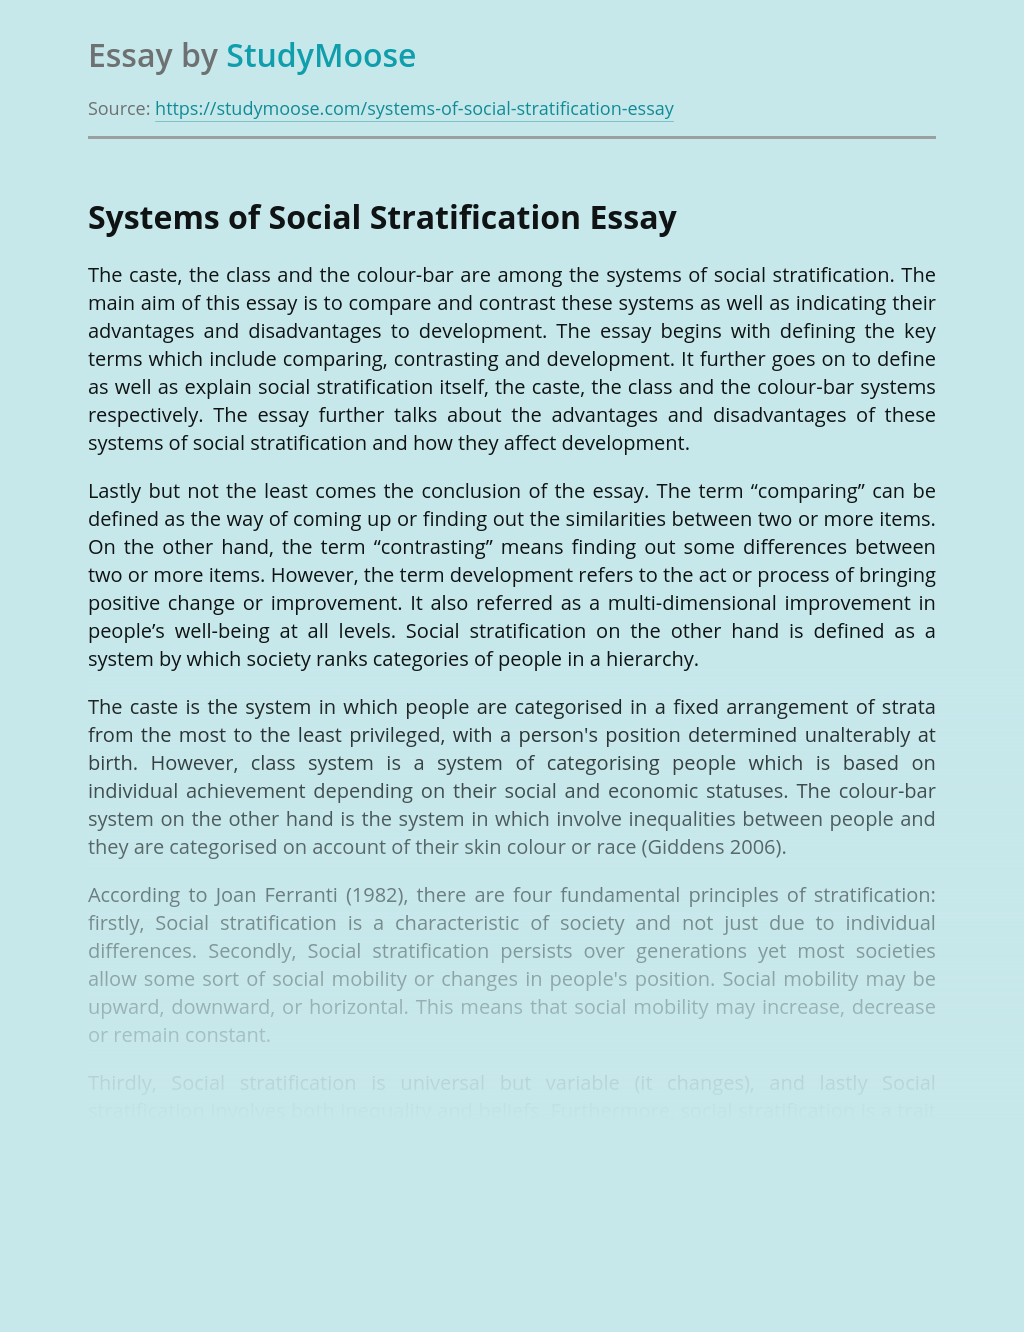 Systems of Social Stratification